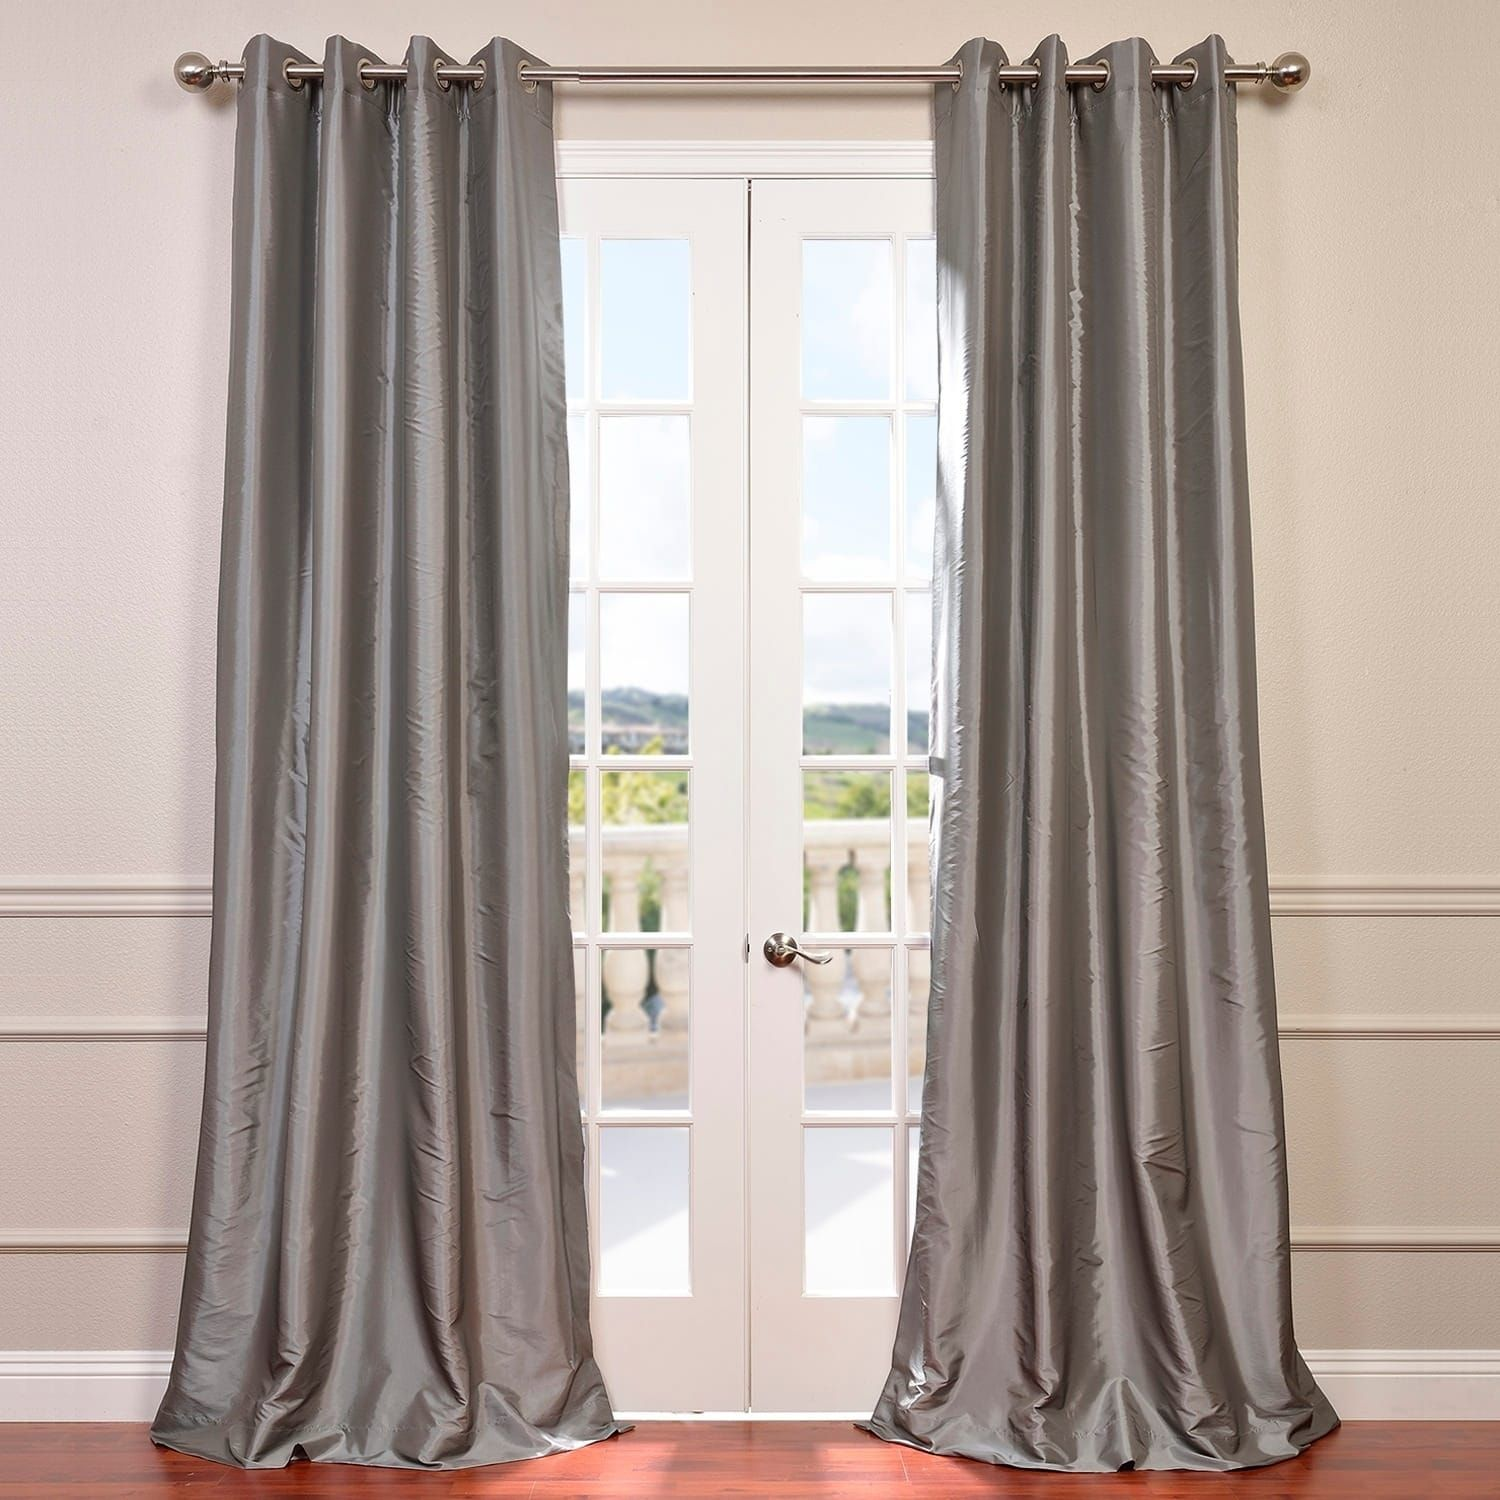 Overstock Com Online Shopping Bedding Furniture Electronics Jewelry Clothing More Half Price Drapes Faux Silk Curtains Silk Curtains